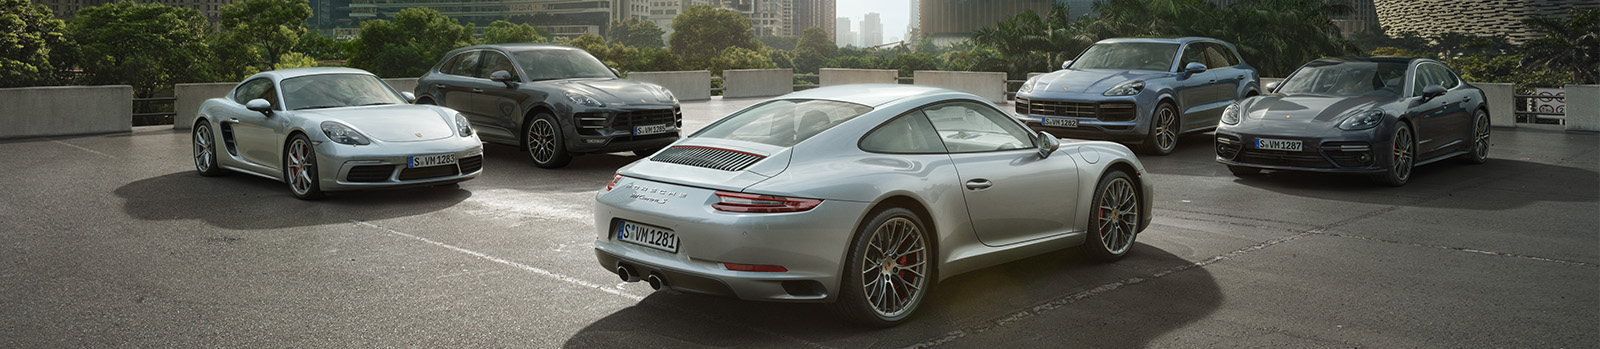 Porsche National Lease Offers